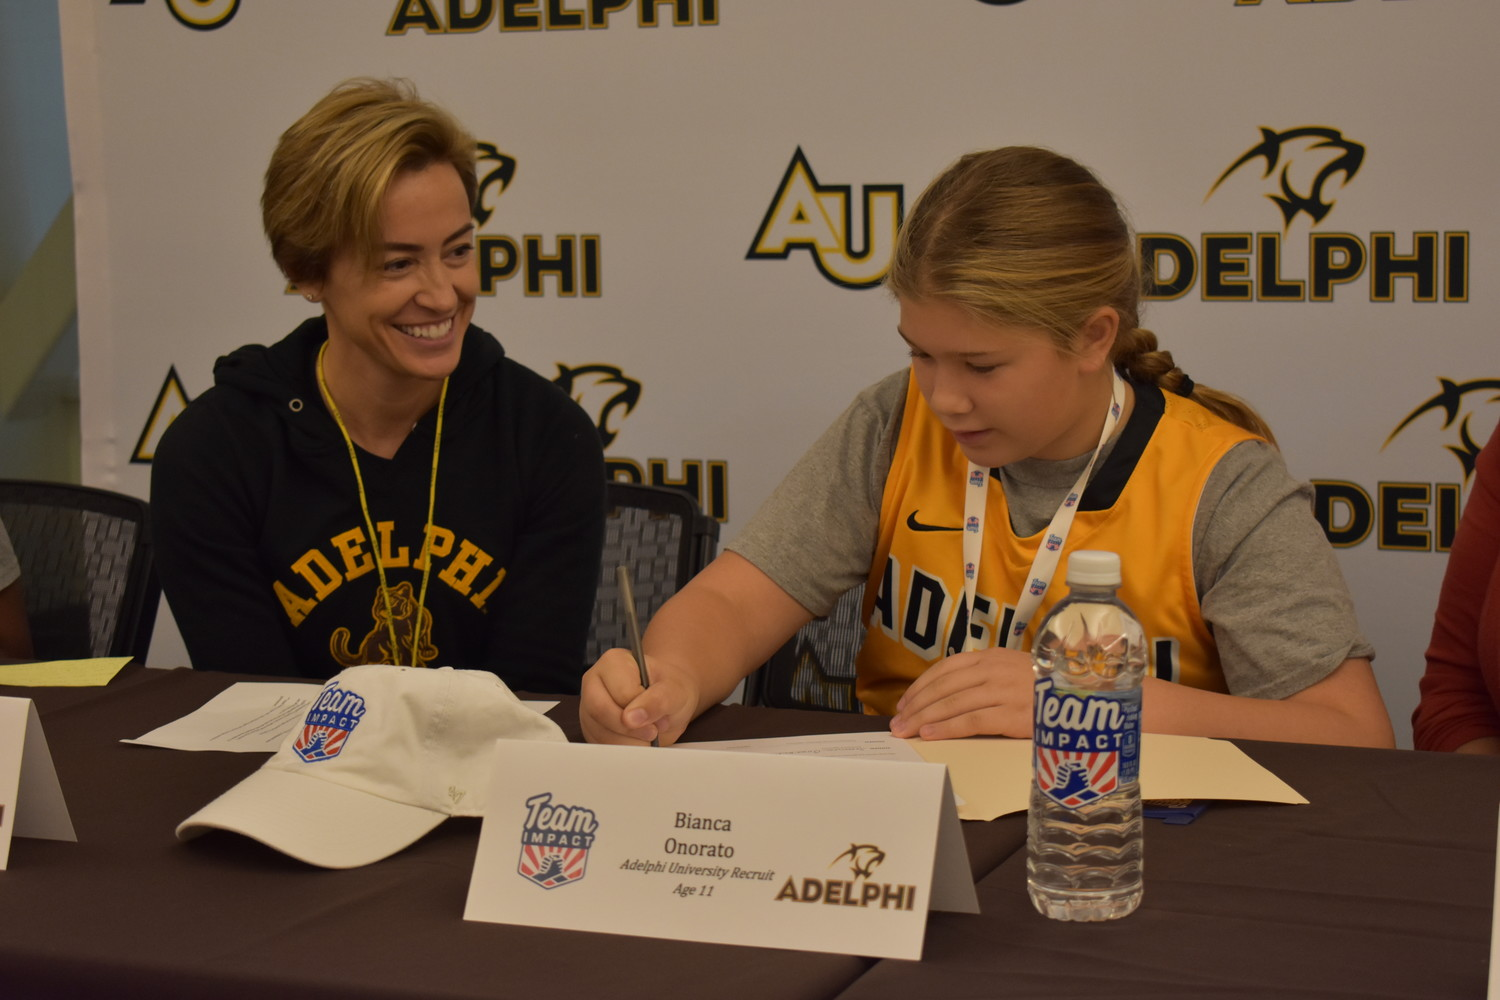 South Side Middle School student Bianca Onorato, 11, signed her letter of intent on Nov. 1 alongside Missy Traversi, coach of the Adelphi University women's basketball team, officially joining the squad through Team Impact, an organization that pairs children suffering from various illnesses with college teams.